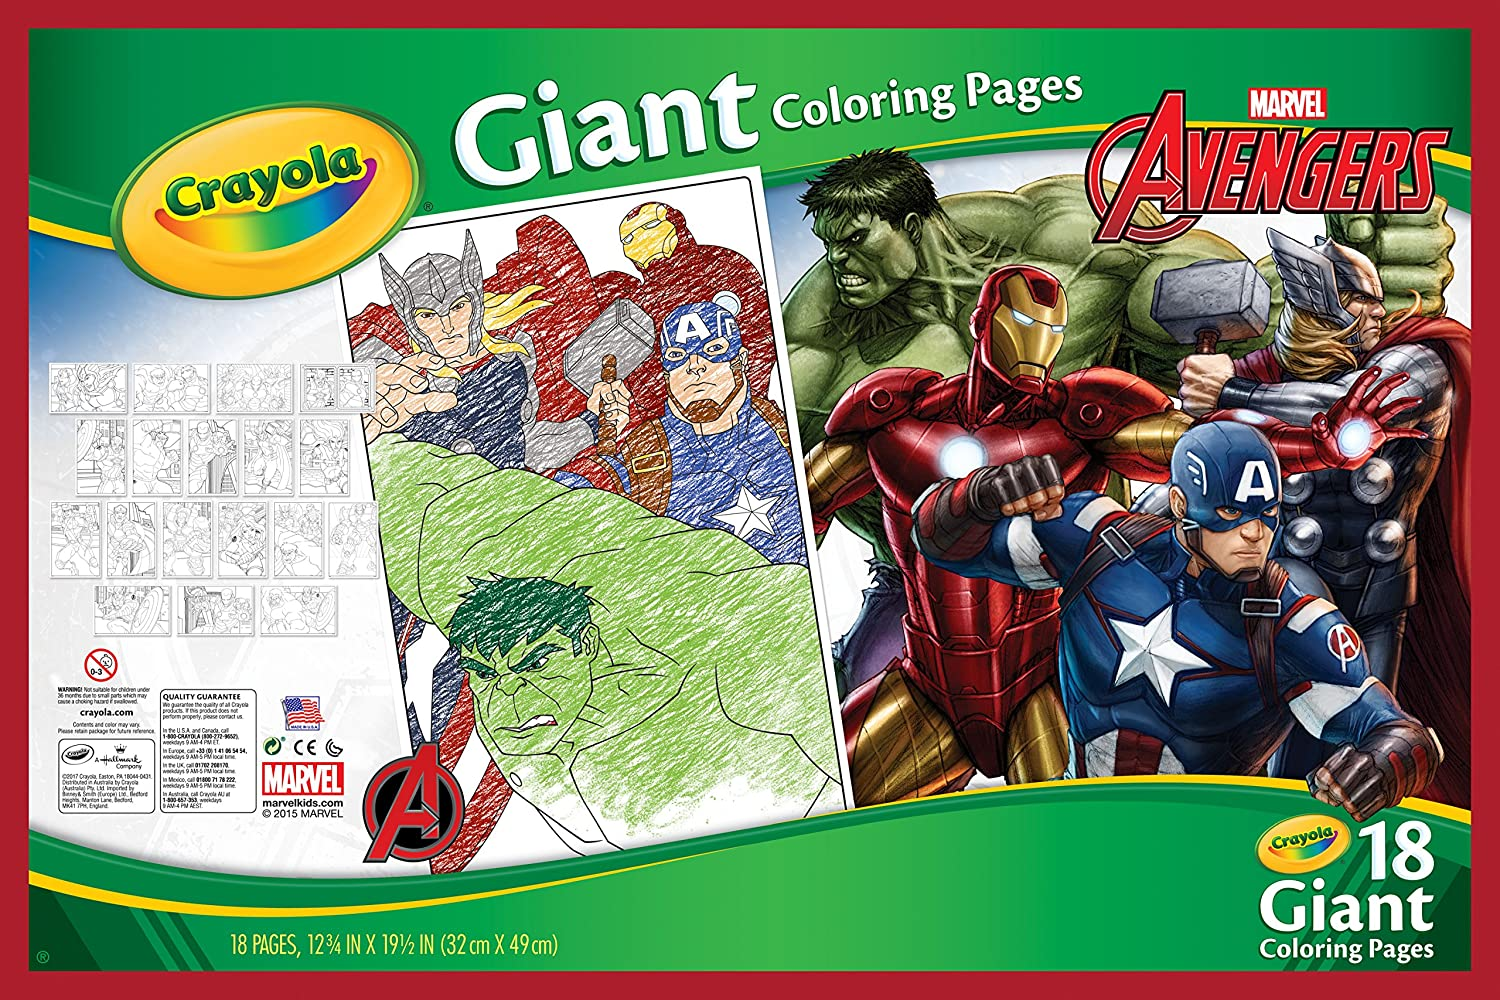 Small Frozen Coloring Pages : Amazon crayola avengers assemble giant coloring pages toys